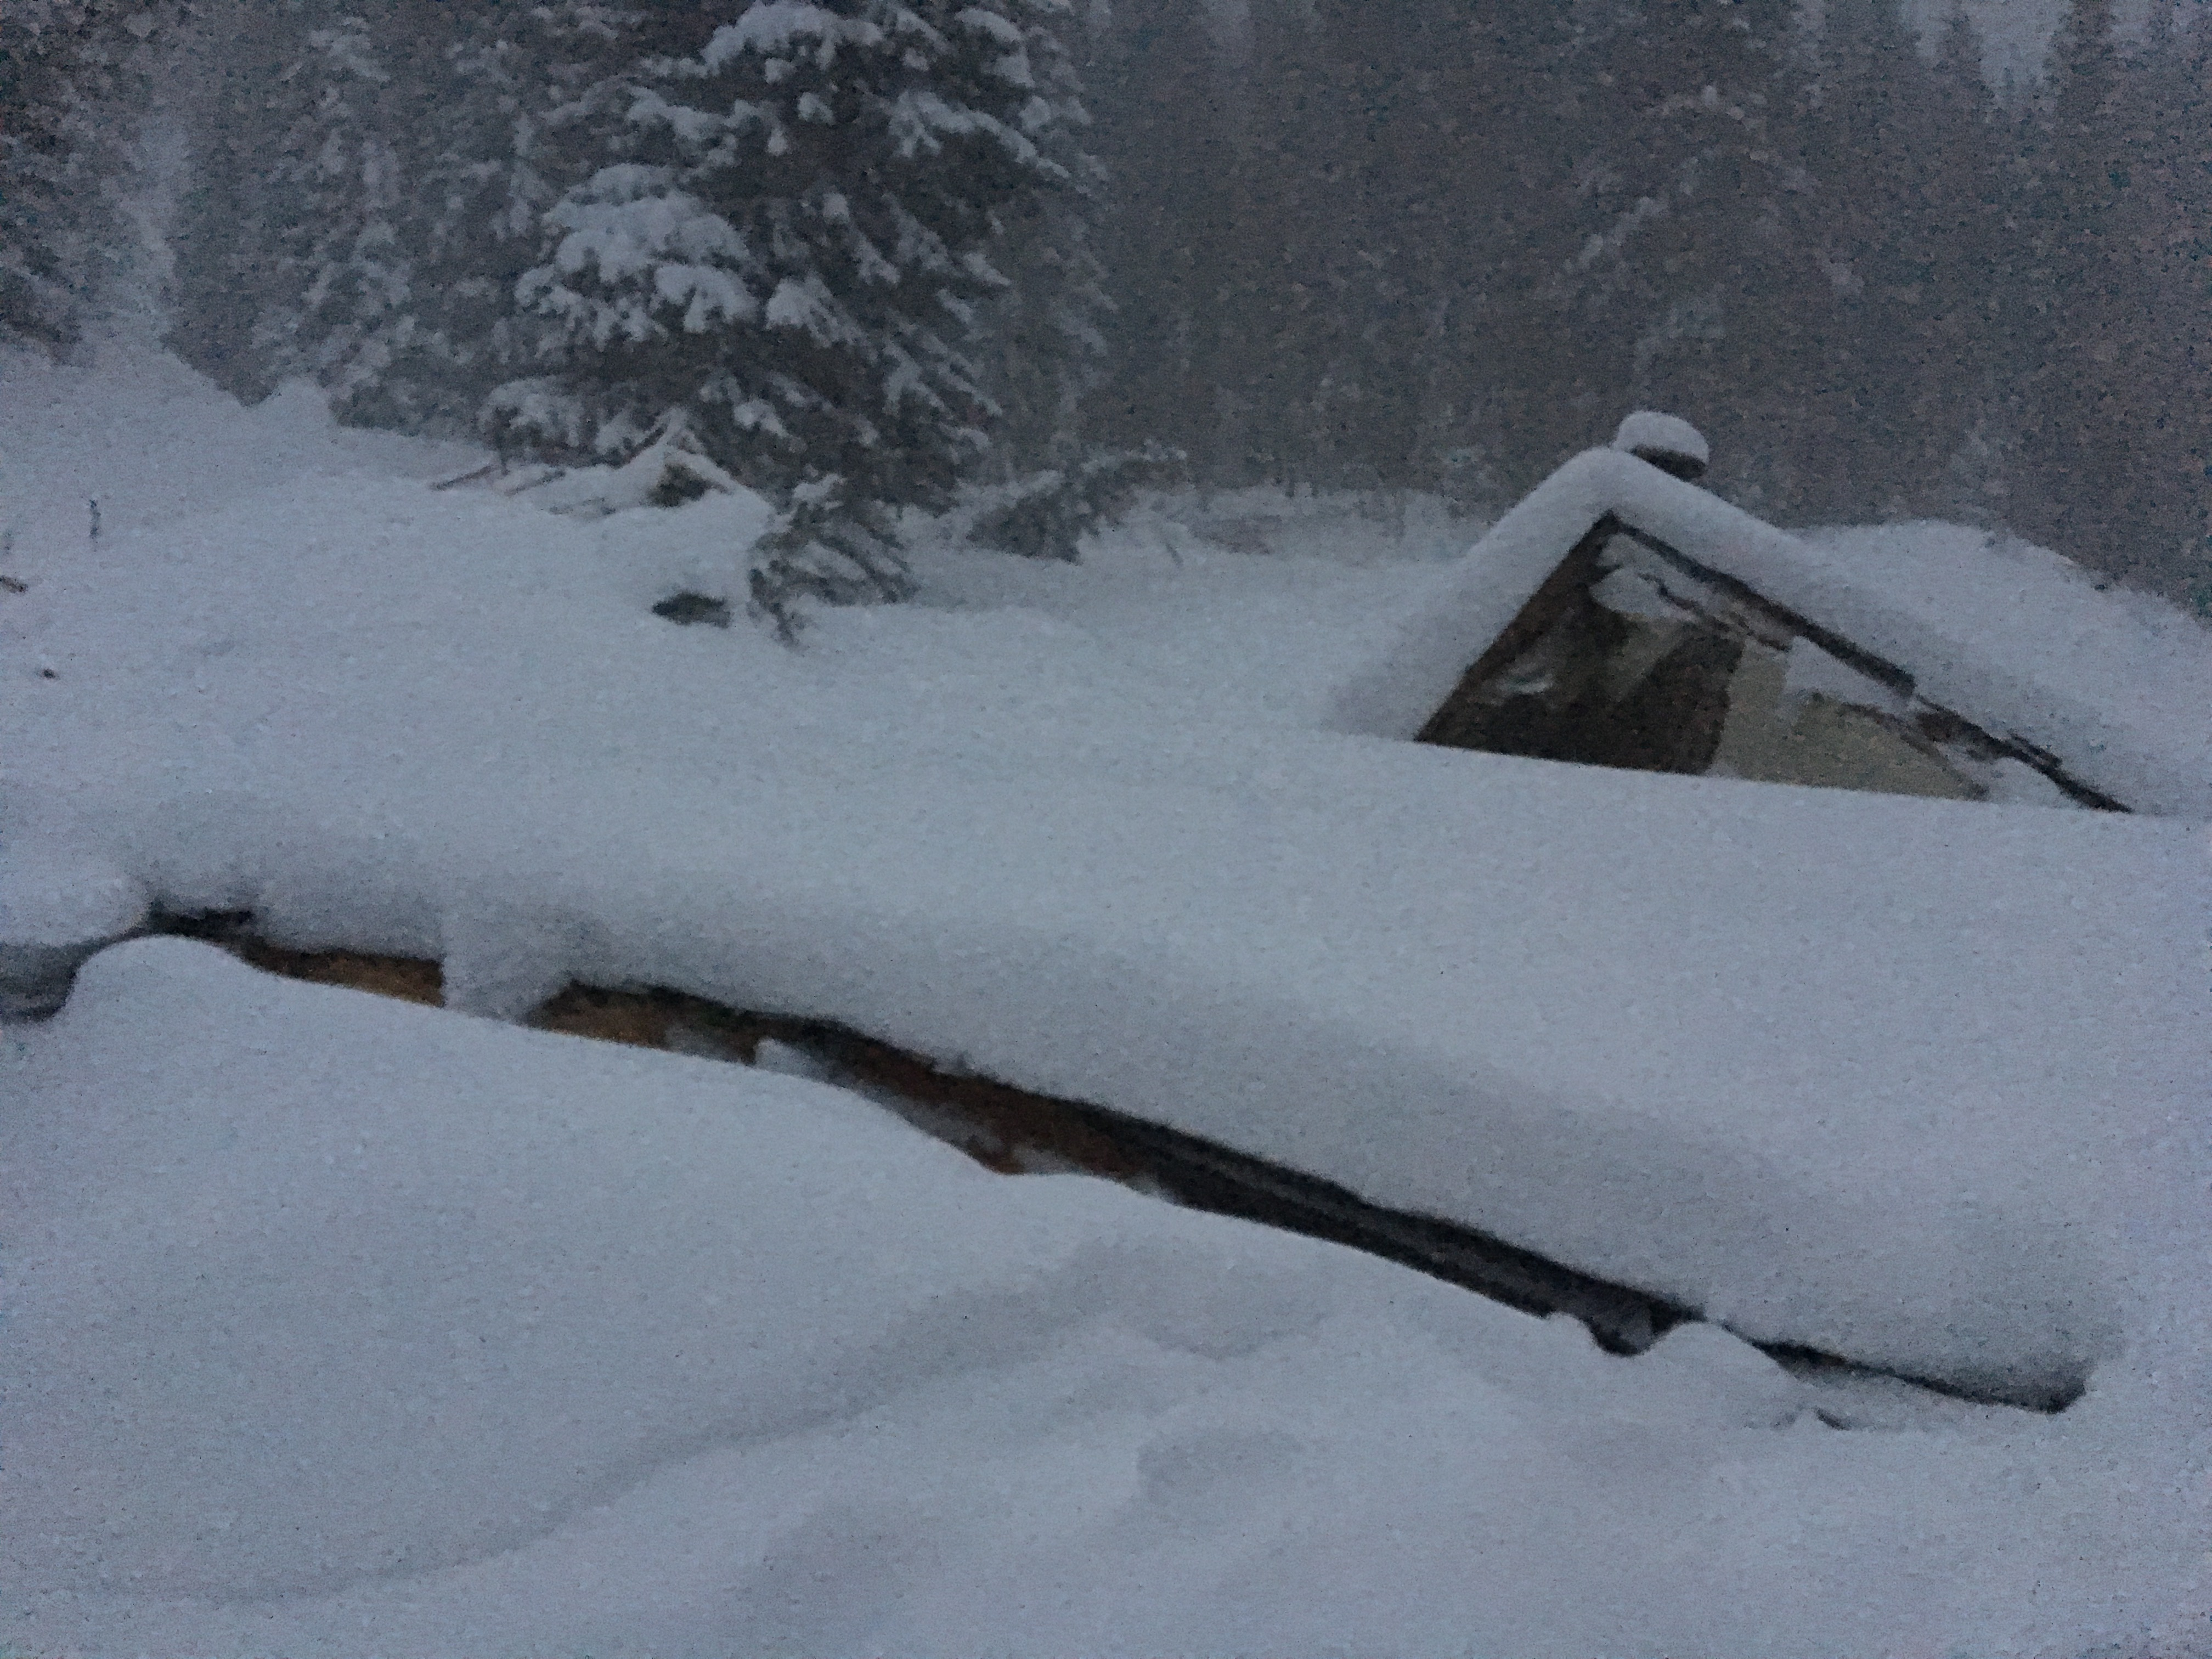 Cabin Destroyed by Avalanche in Peru Creek